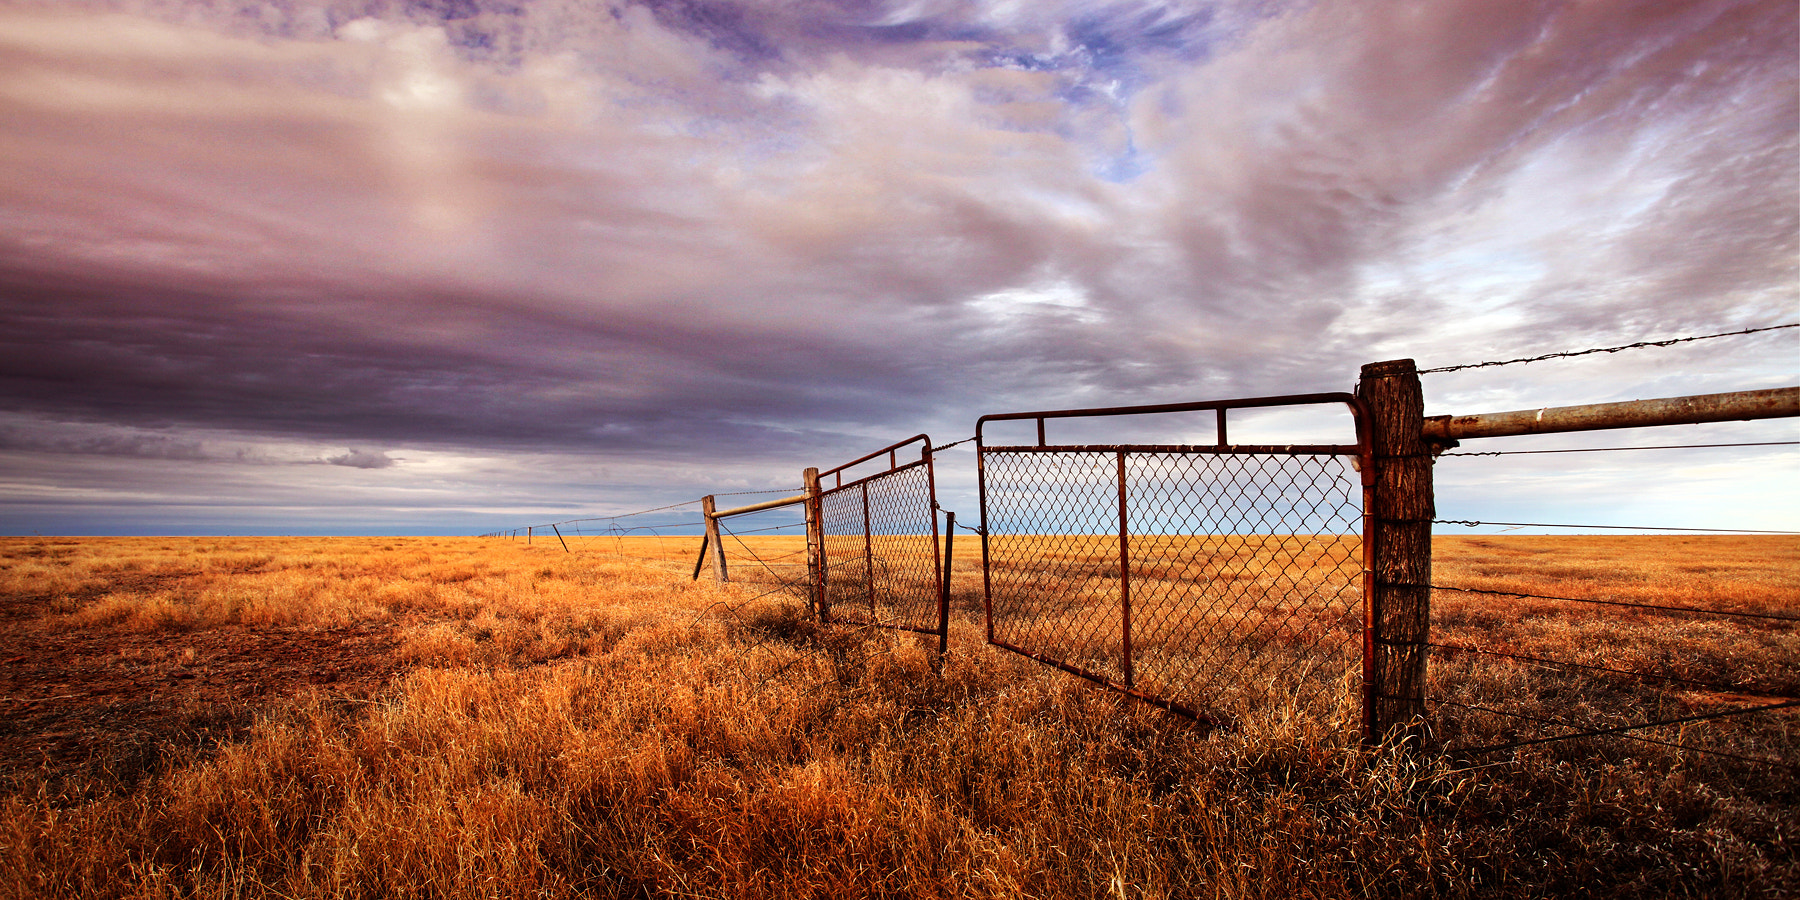 Photograph The gate by Dan Proud on 500px